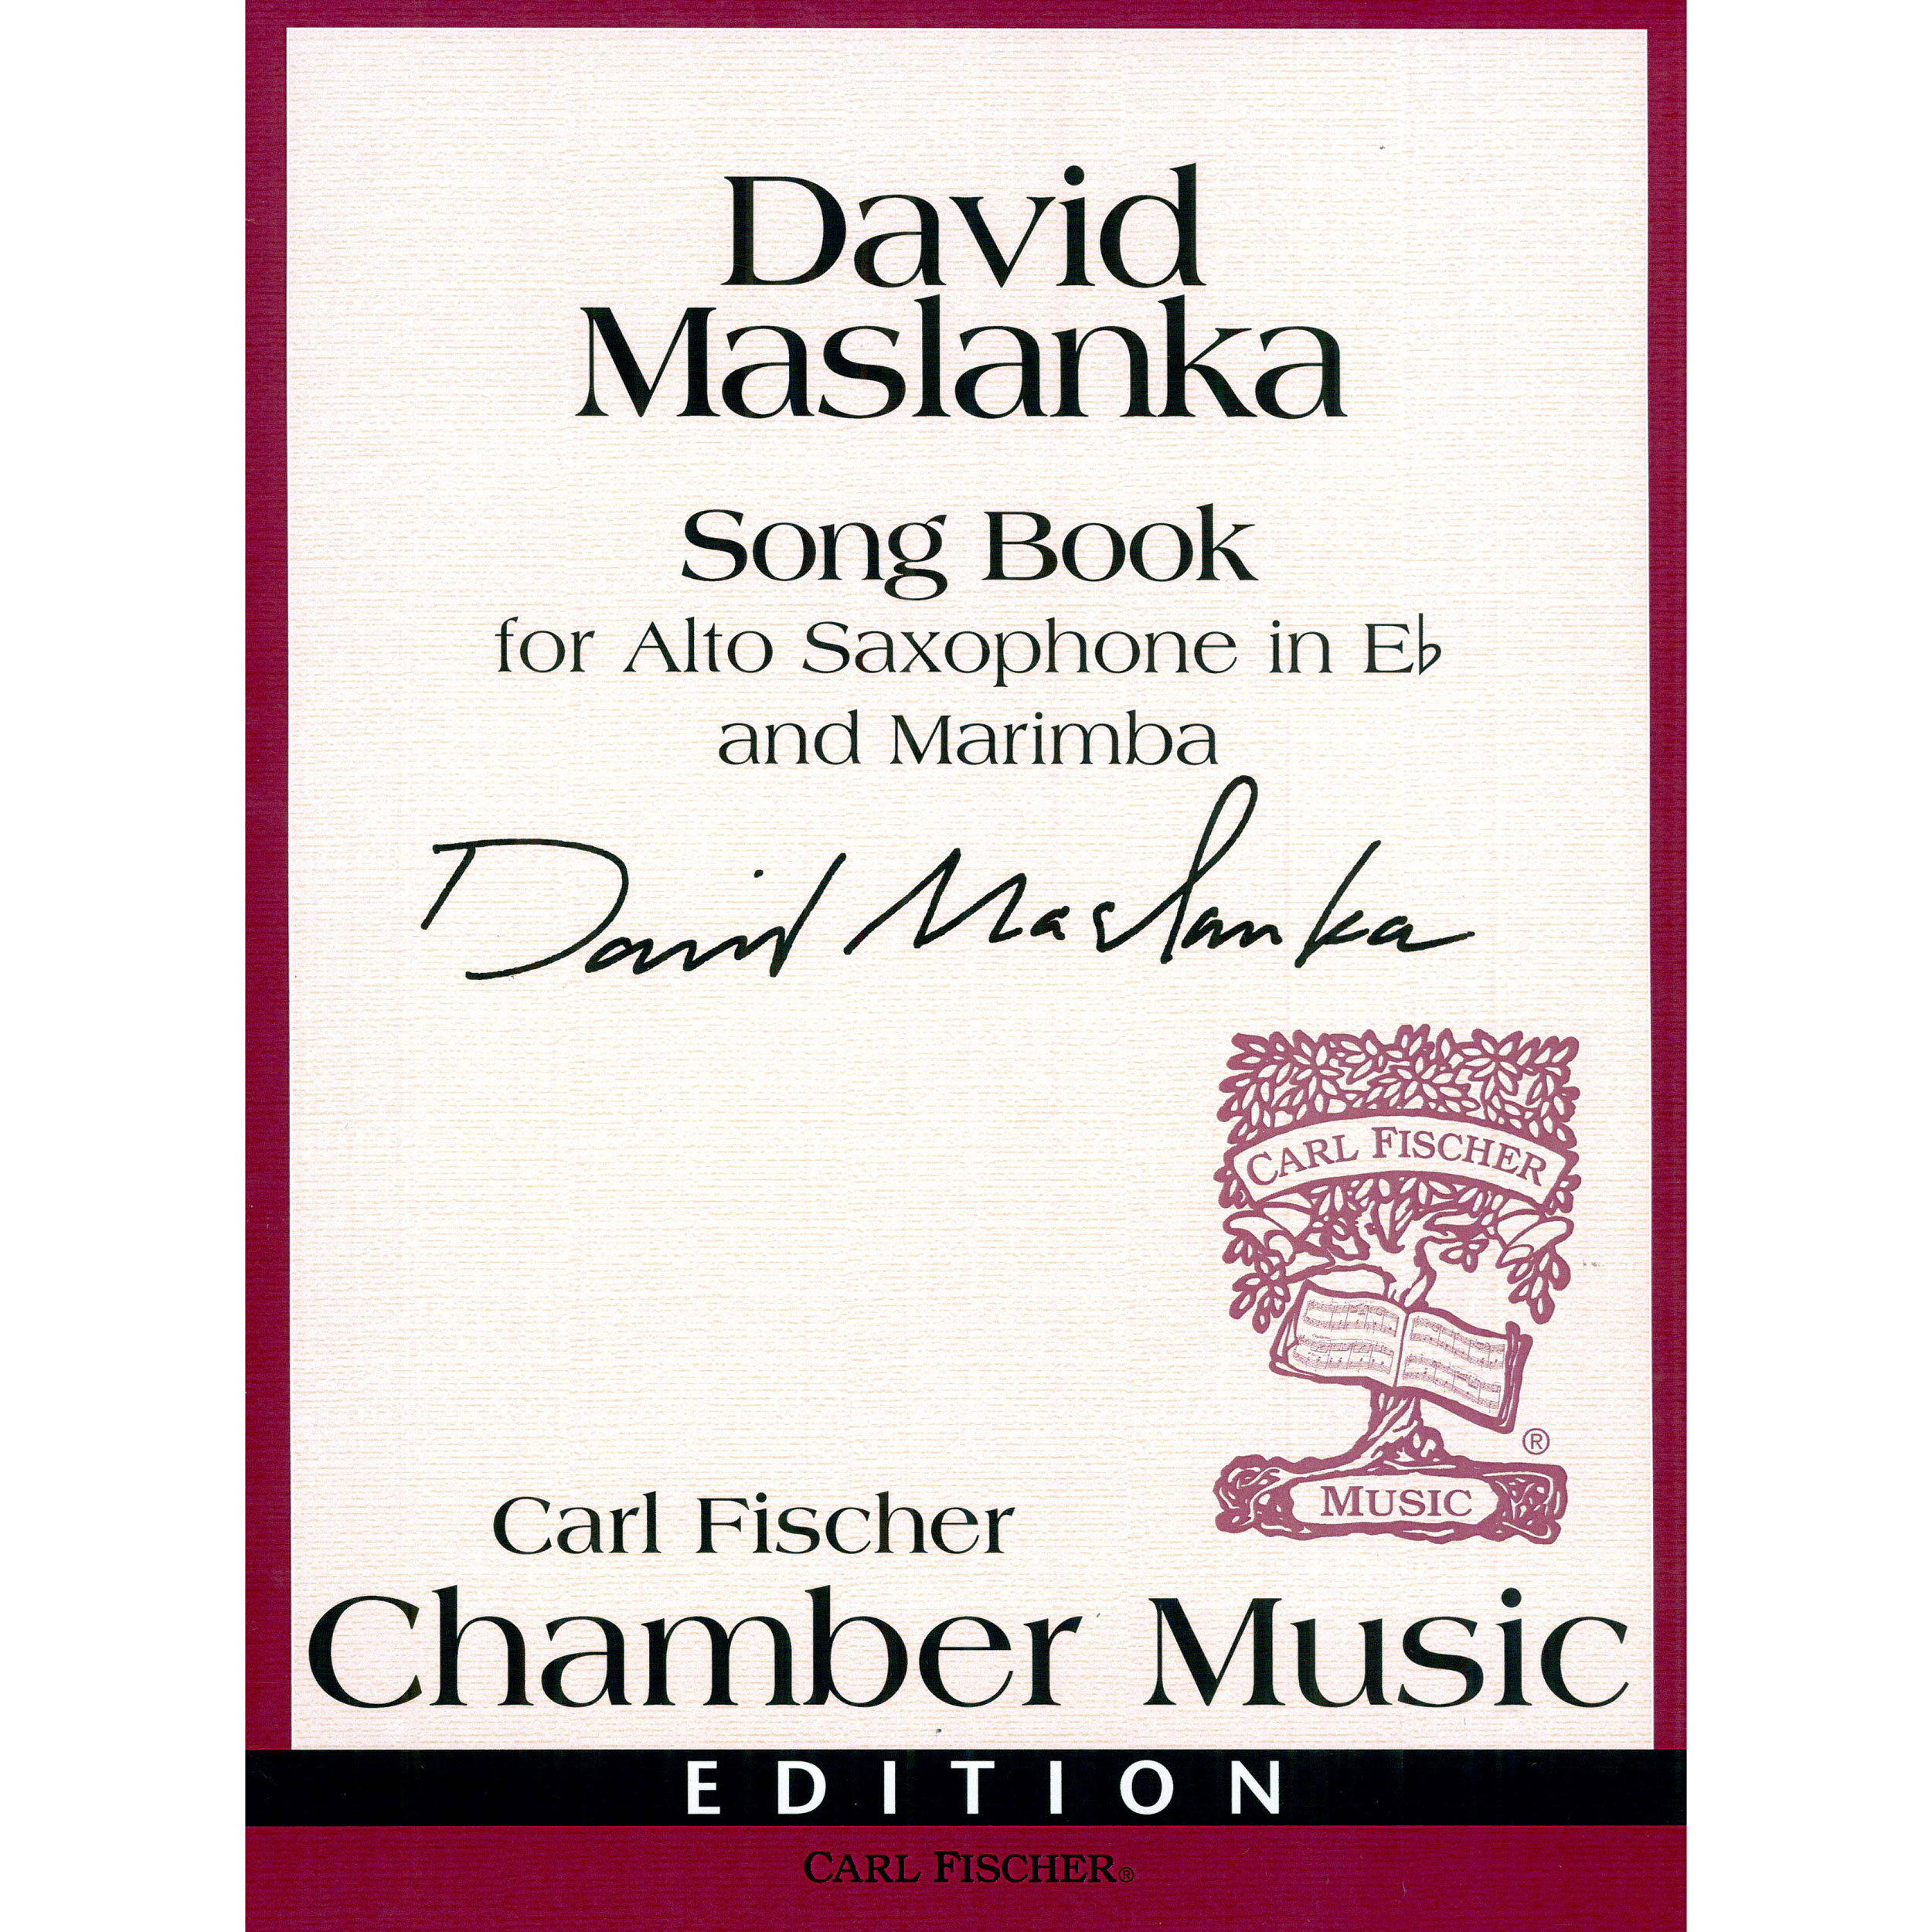 Song Book by David Maslanka